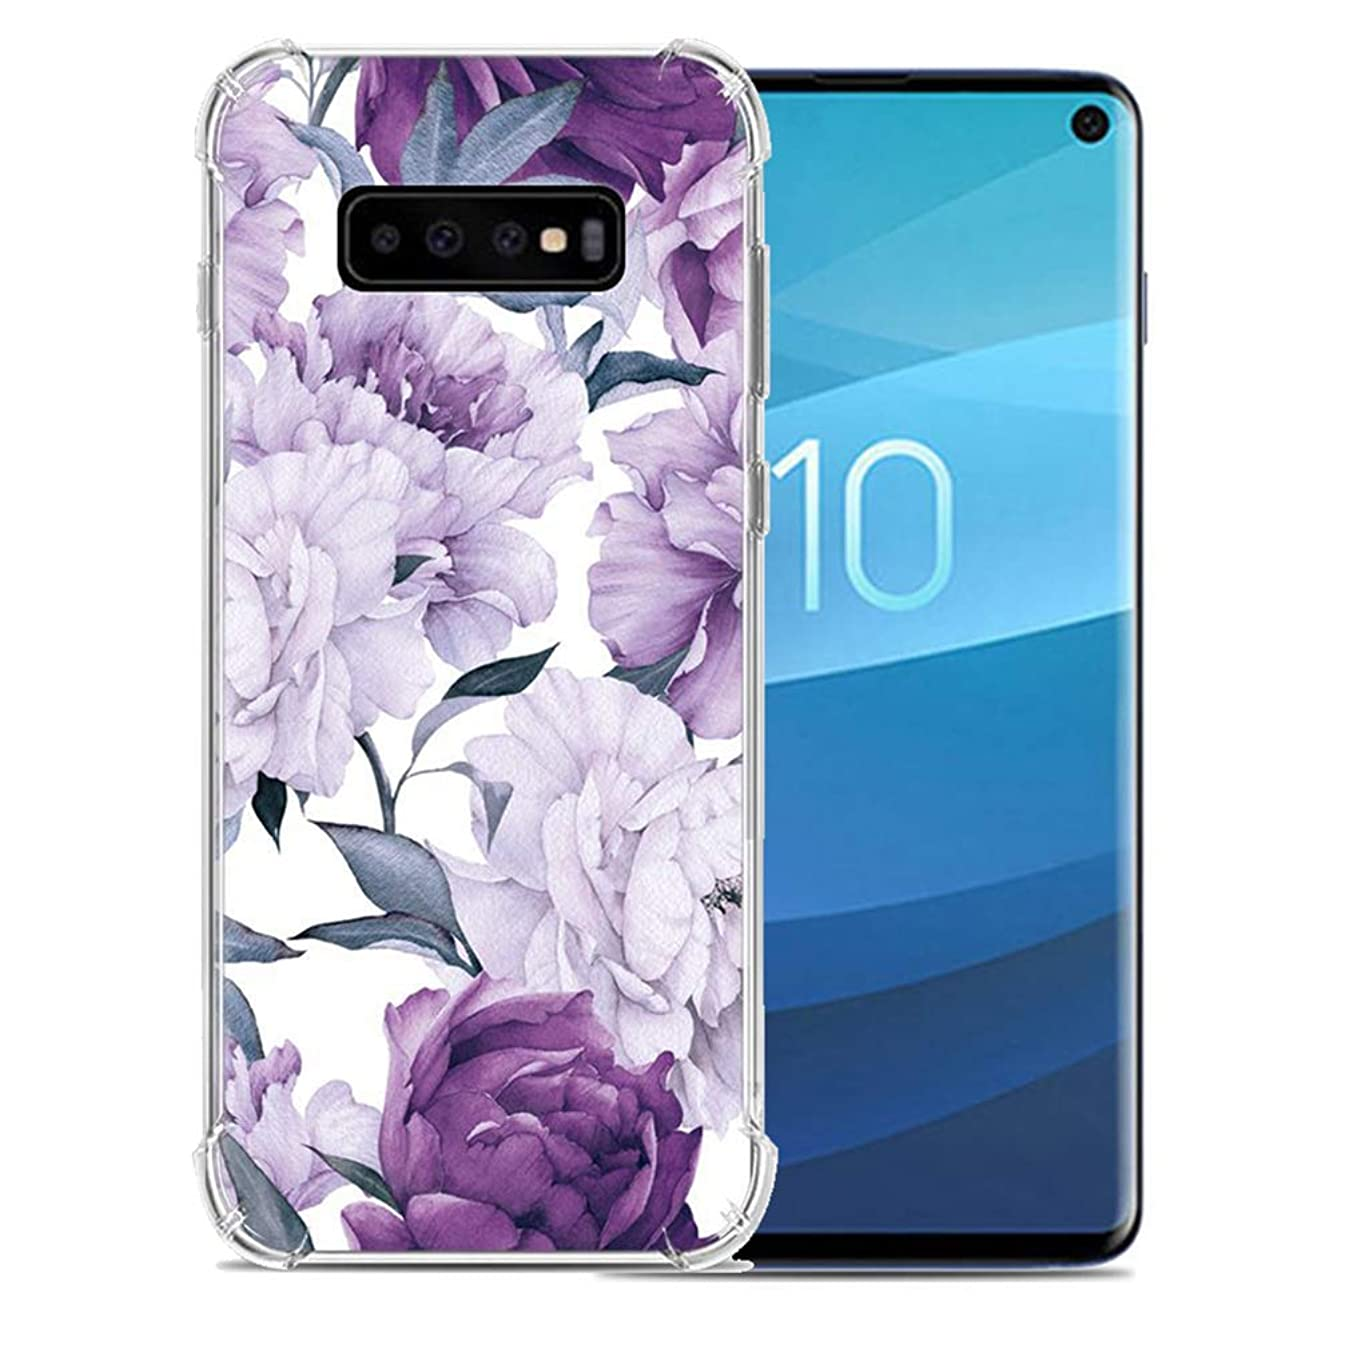 ANERNAI Compatible with Samsung Galaxy S10 2019 Case, Ultra-Thin Pattern Design Soft Flexible TPU Shockproof Cute Anti-Scratch Cover Case (Purple Flower)